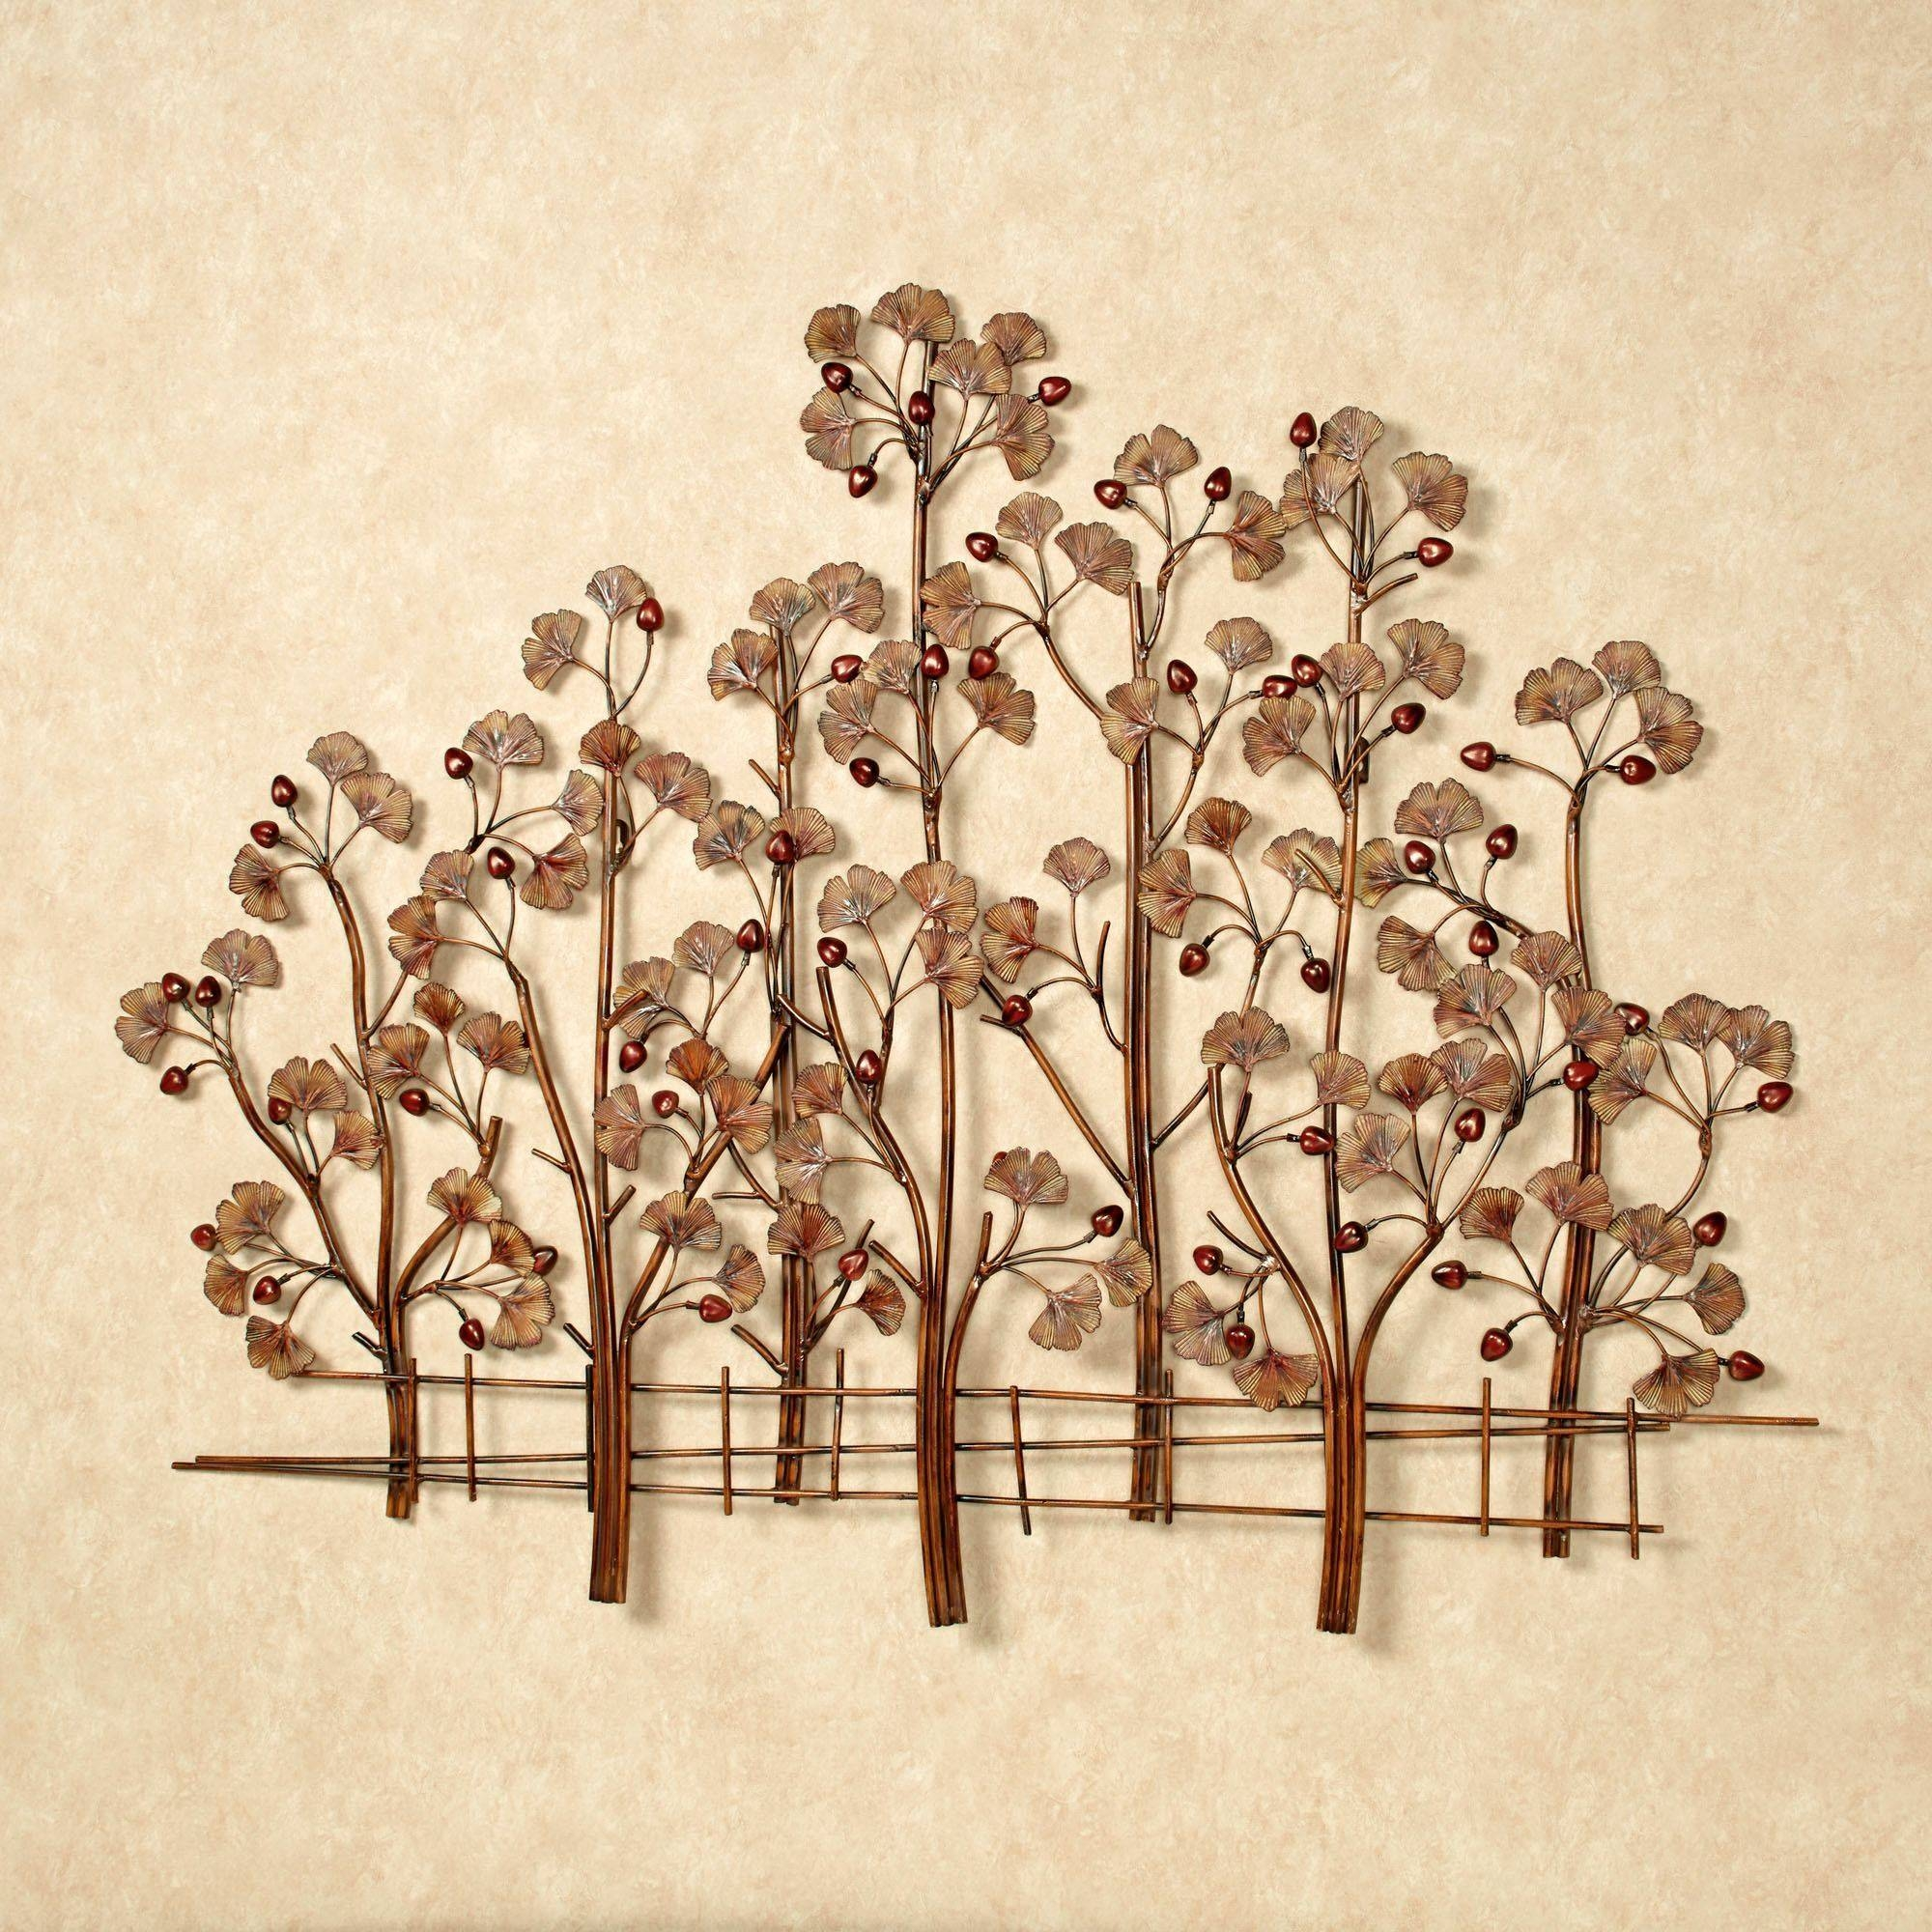 Ginkgo Tree Metal Wall Sculpture Intended For Newest Trees Metal Wall Art (View 7 of 20)